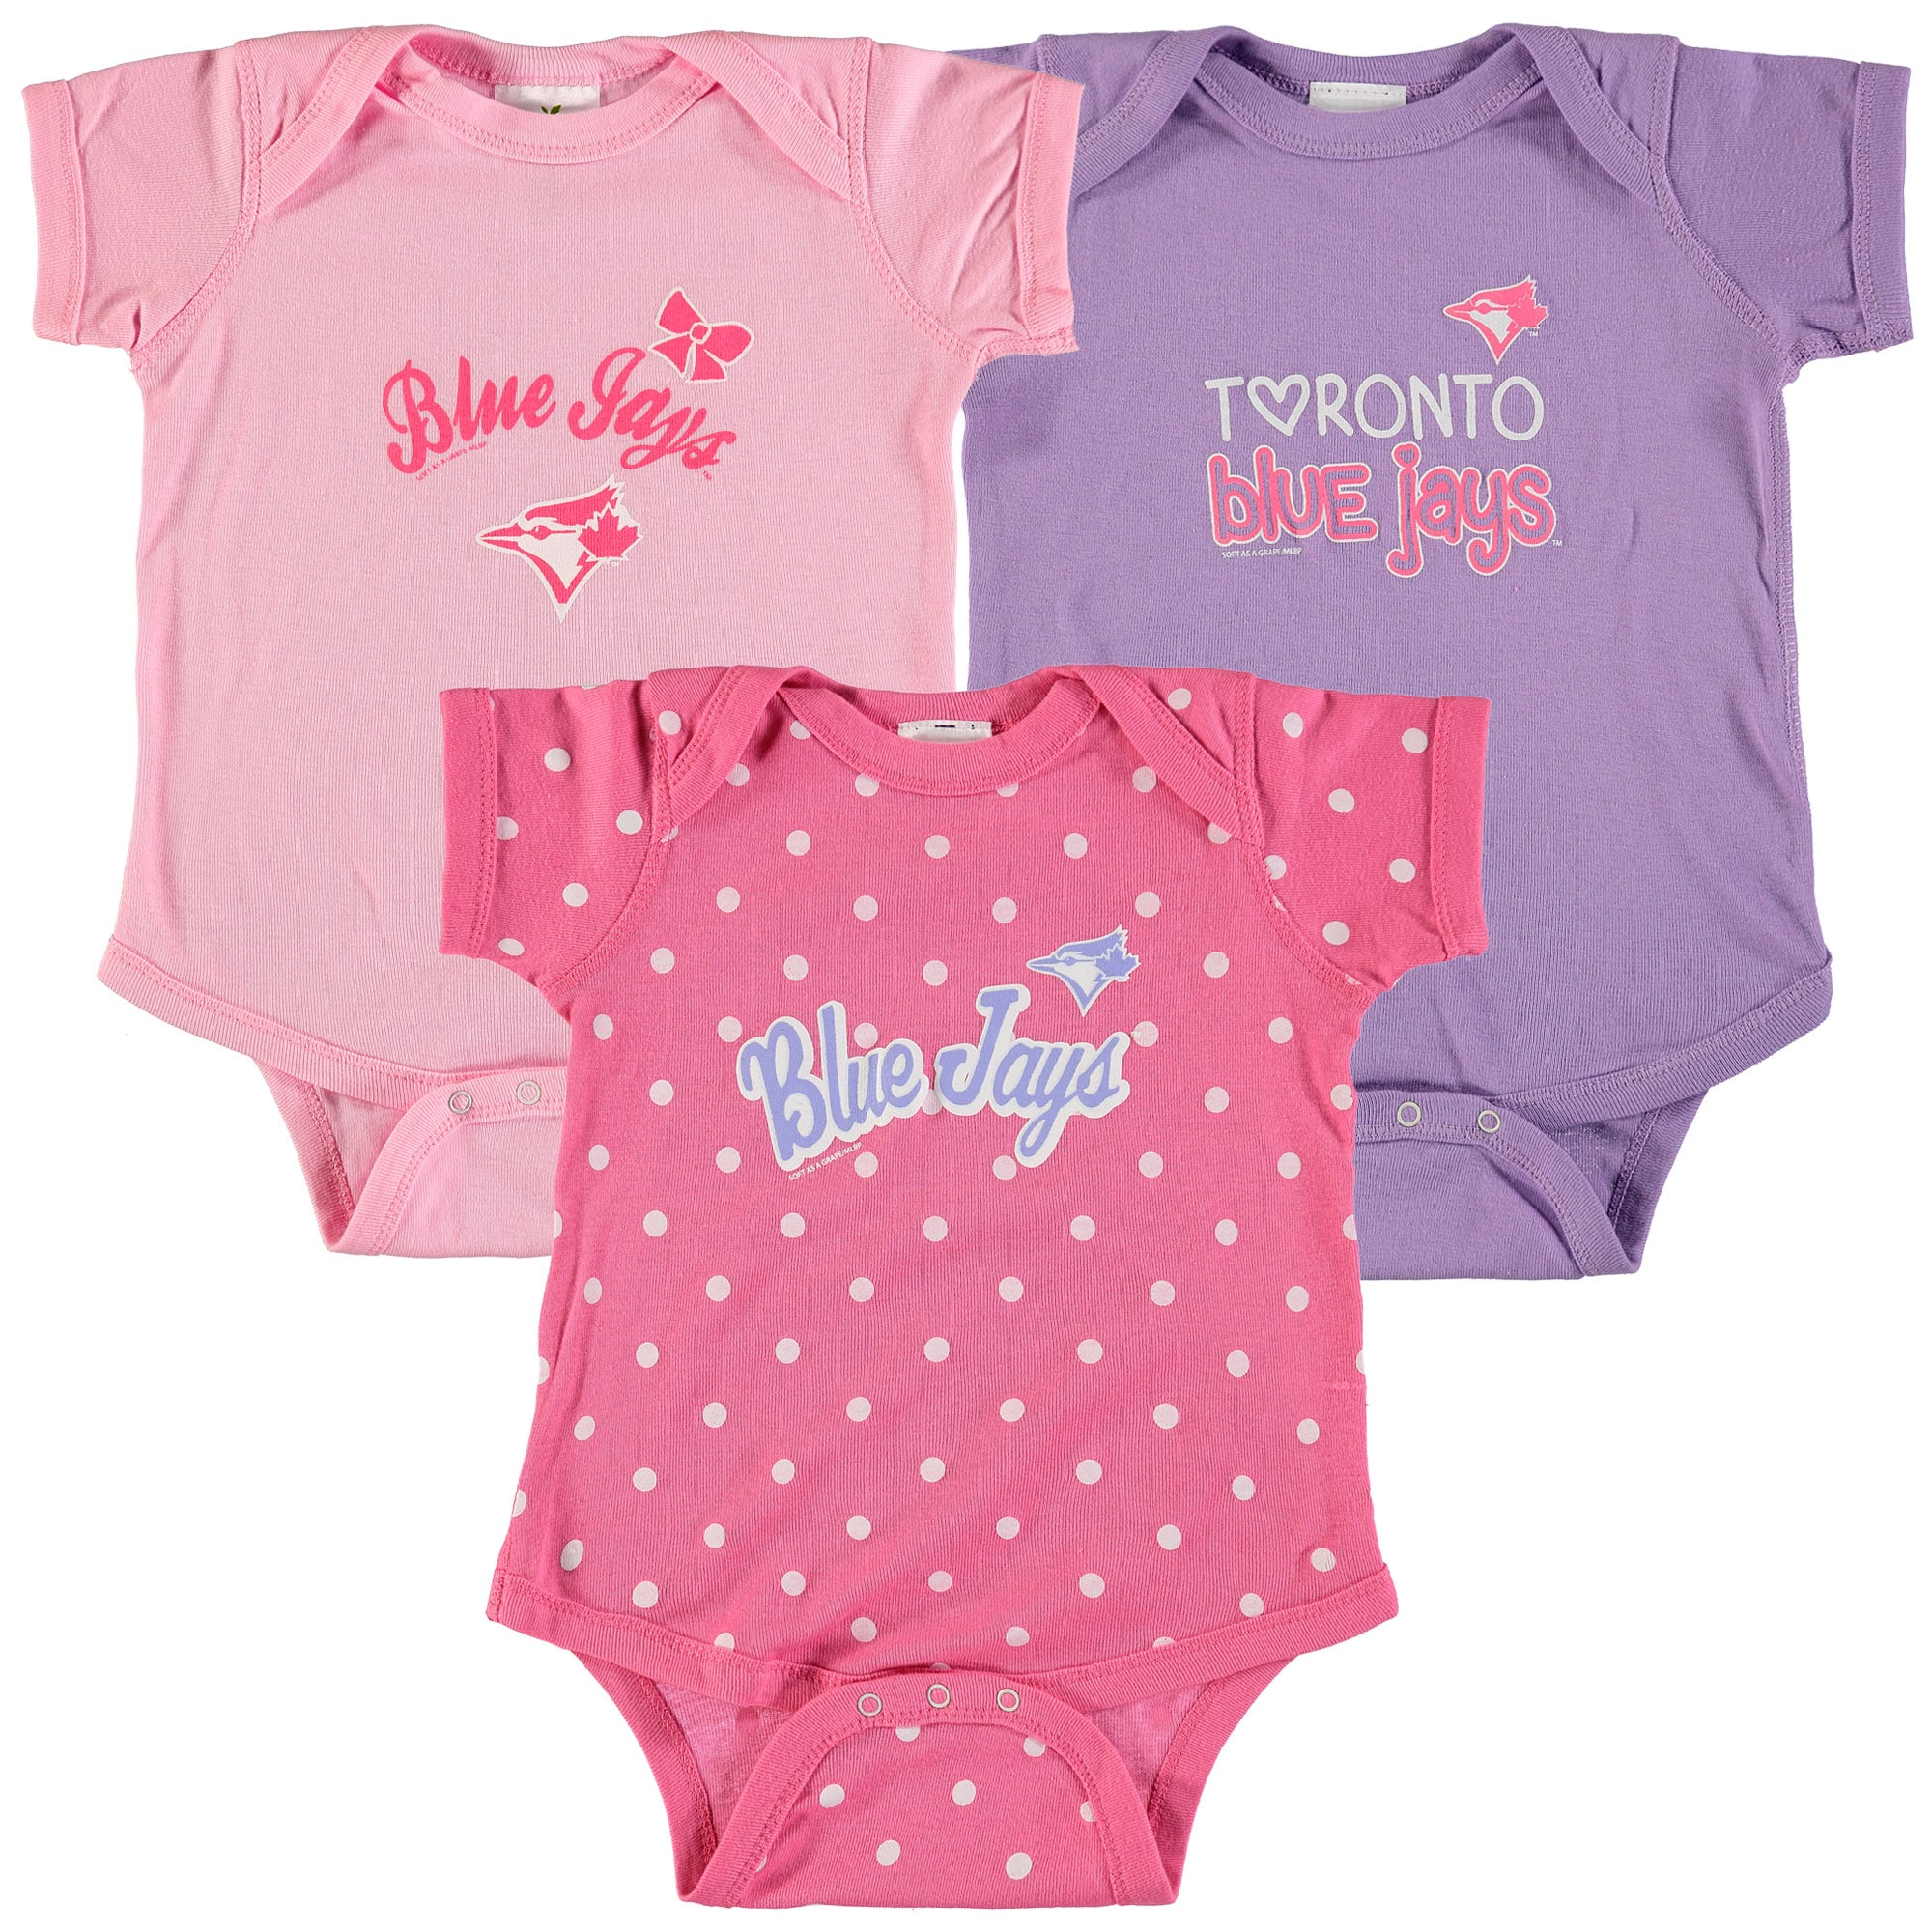 Toronto Blue Jays Soft as a Grape Girls Infant 3-Pack Rookie Bodysuit Set - Pink/Purple